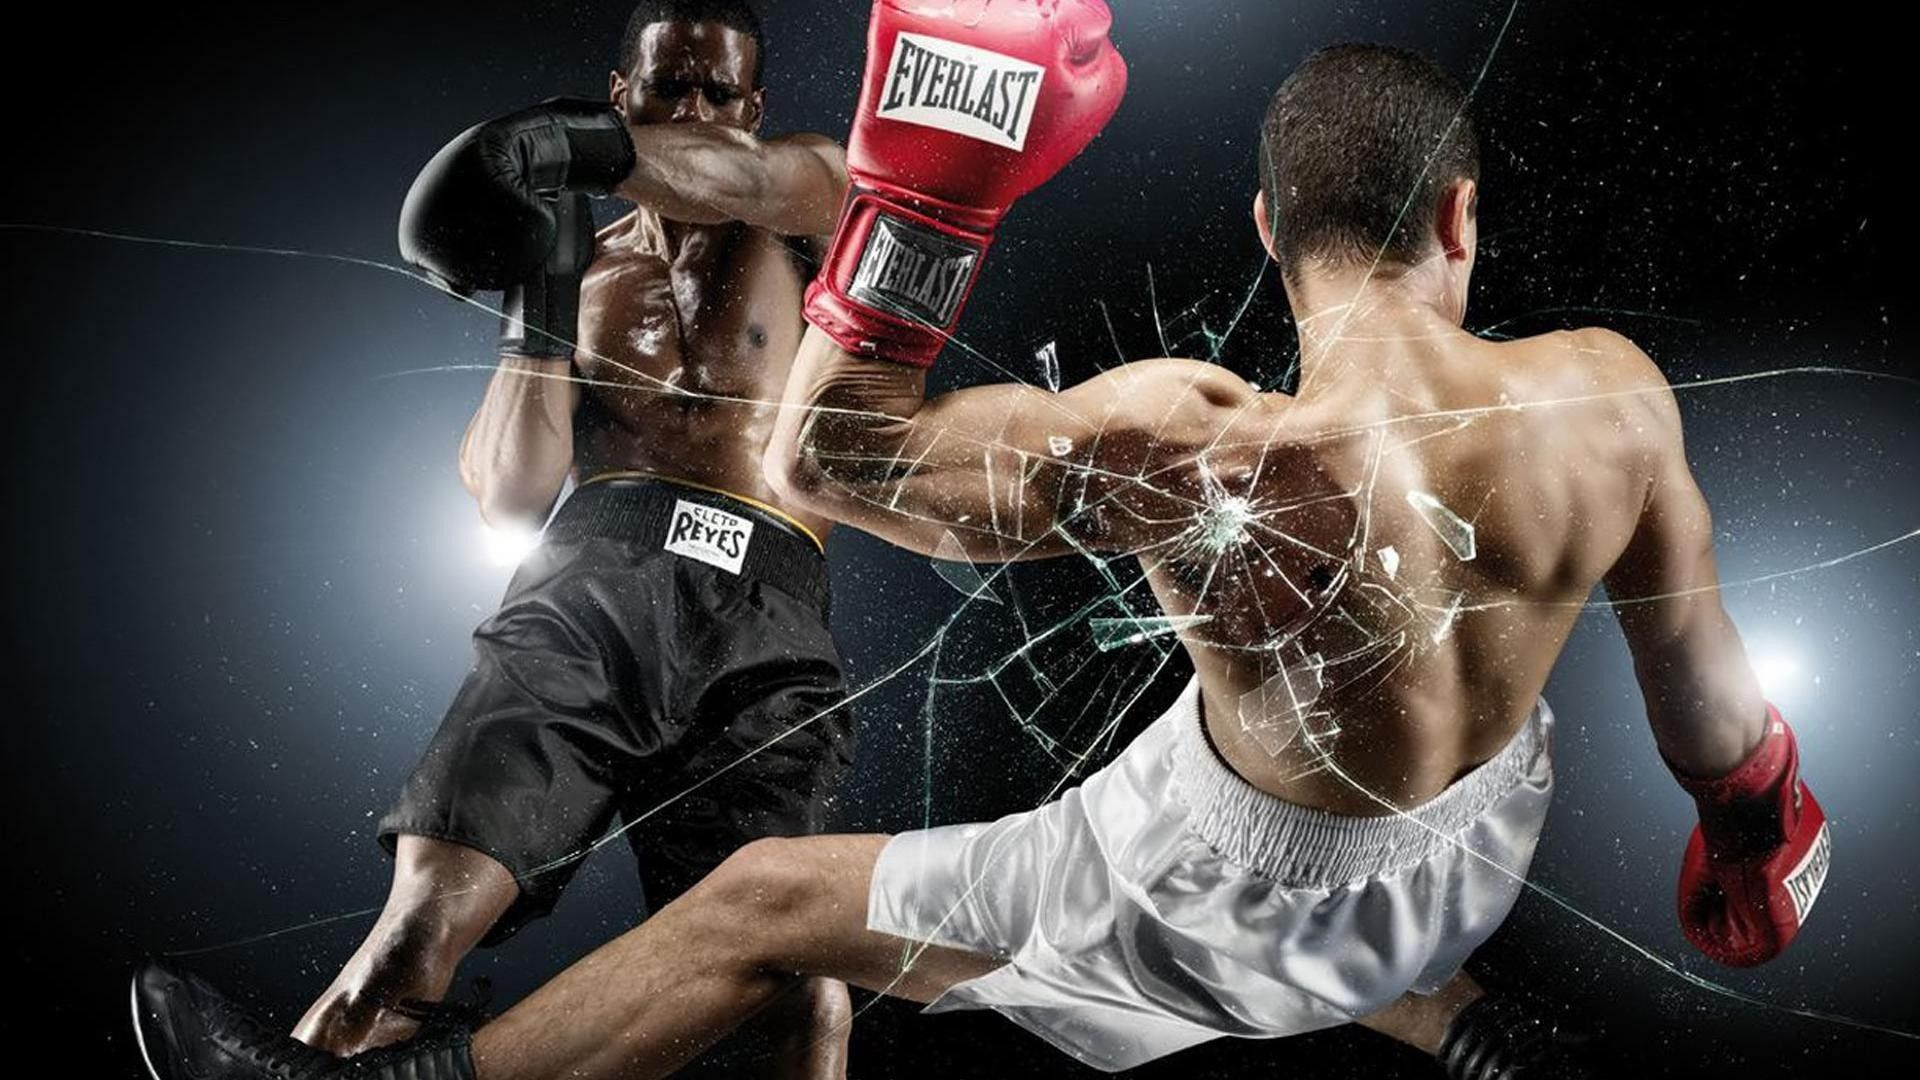 Boxing download free wallpapers for pc in hd